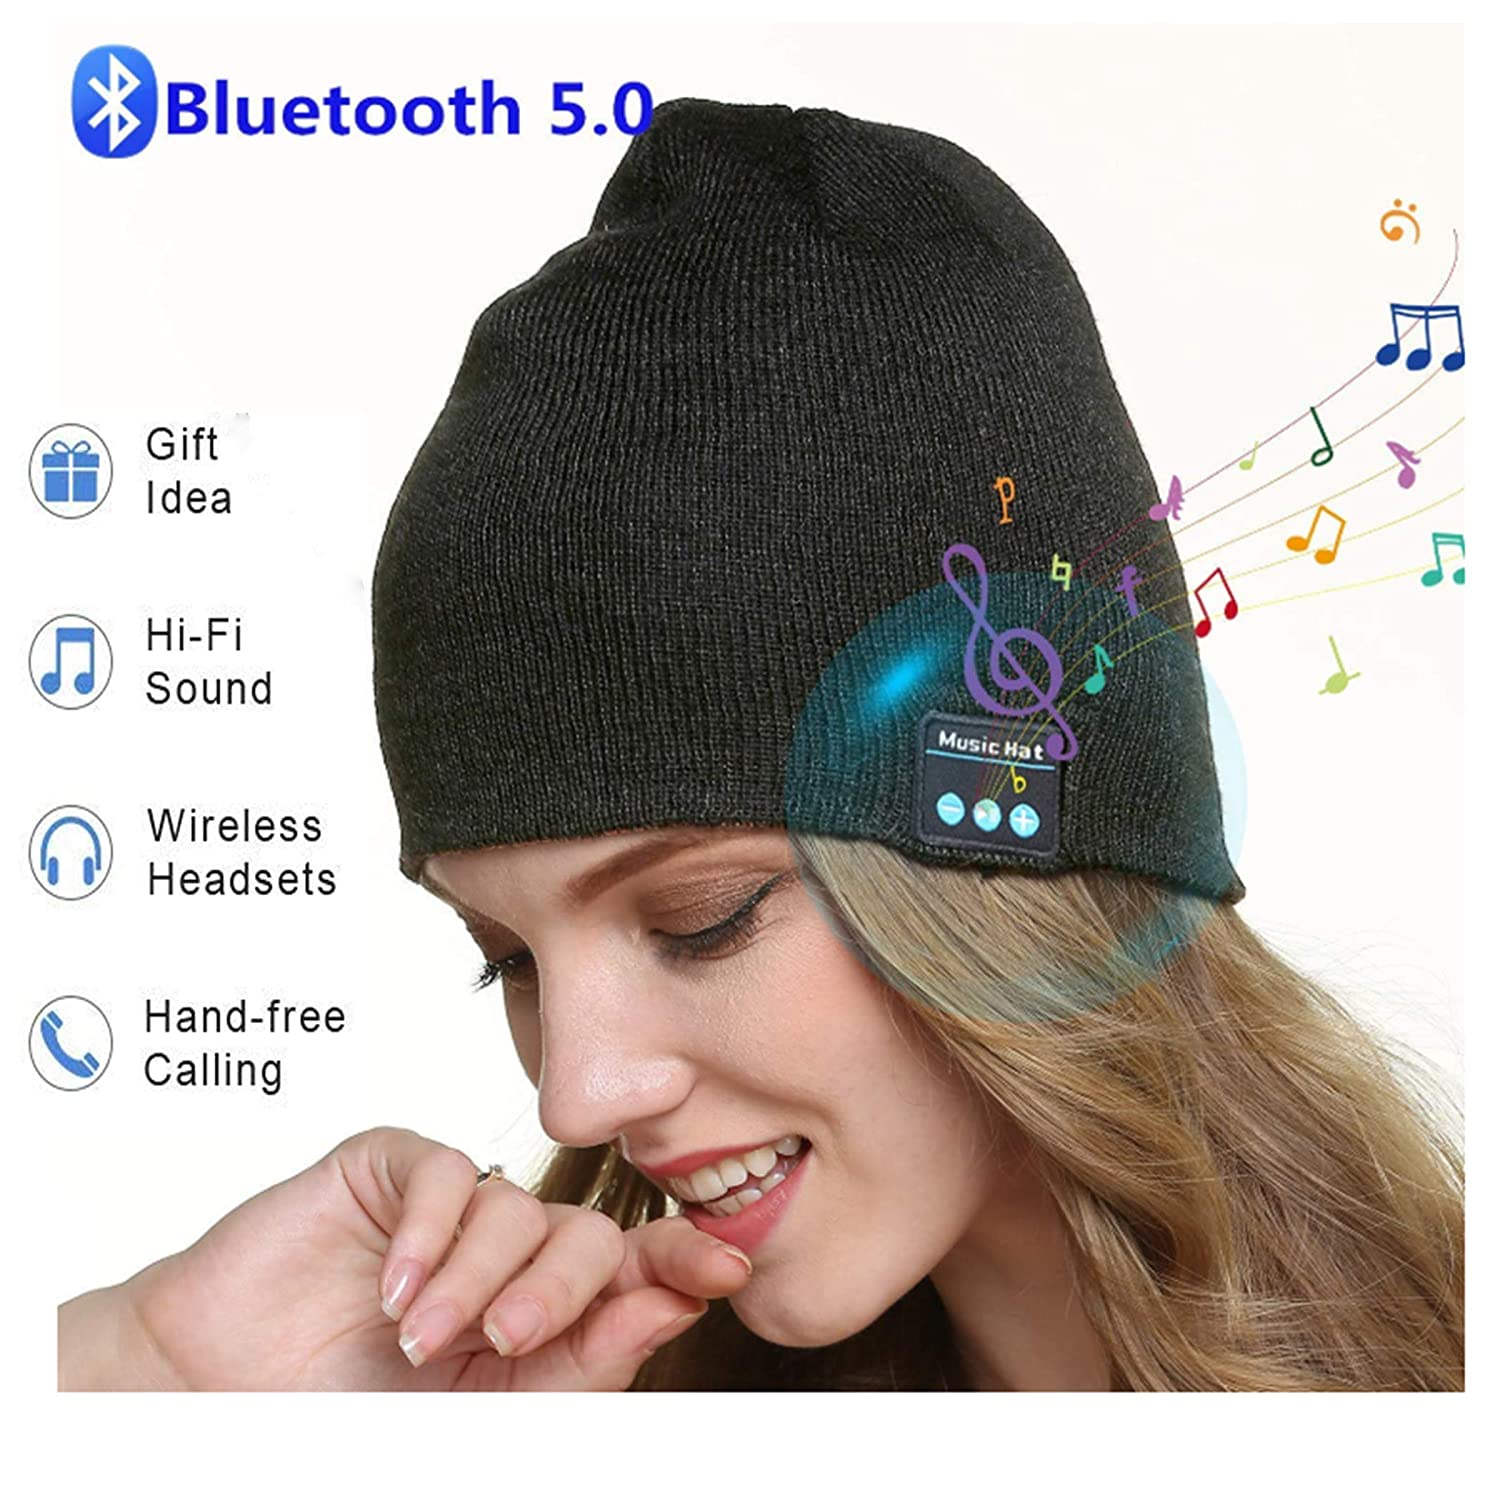 Unisex Bluetooth Beanie Hat for Men Sports Running Headphones Winter Knitted Hat with 2 HD Stereo Speakers & Microphone Unique Cool Stocking Stuffers for Men Women Teen Boys Girls